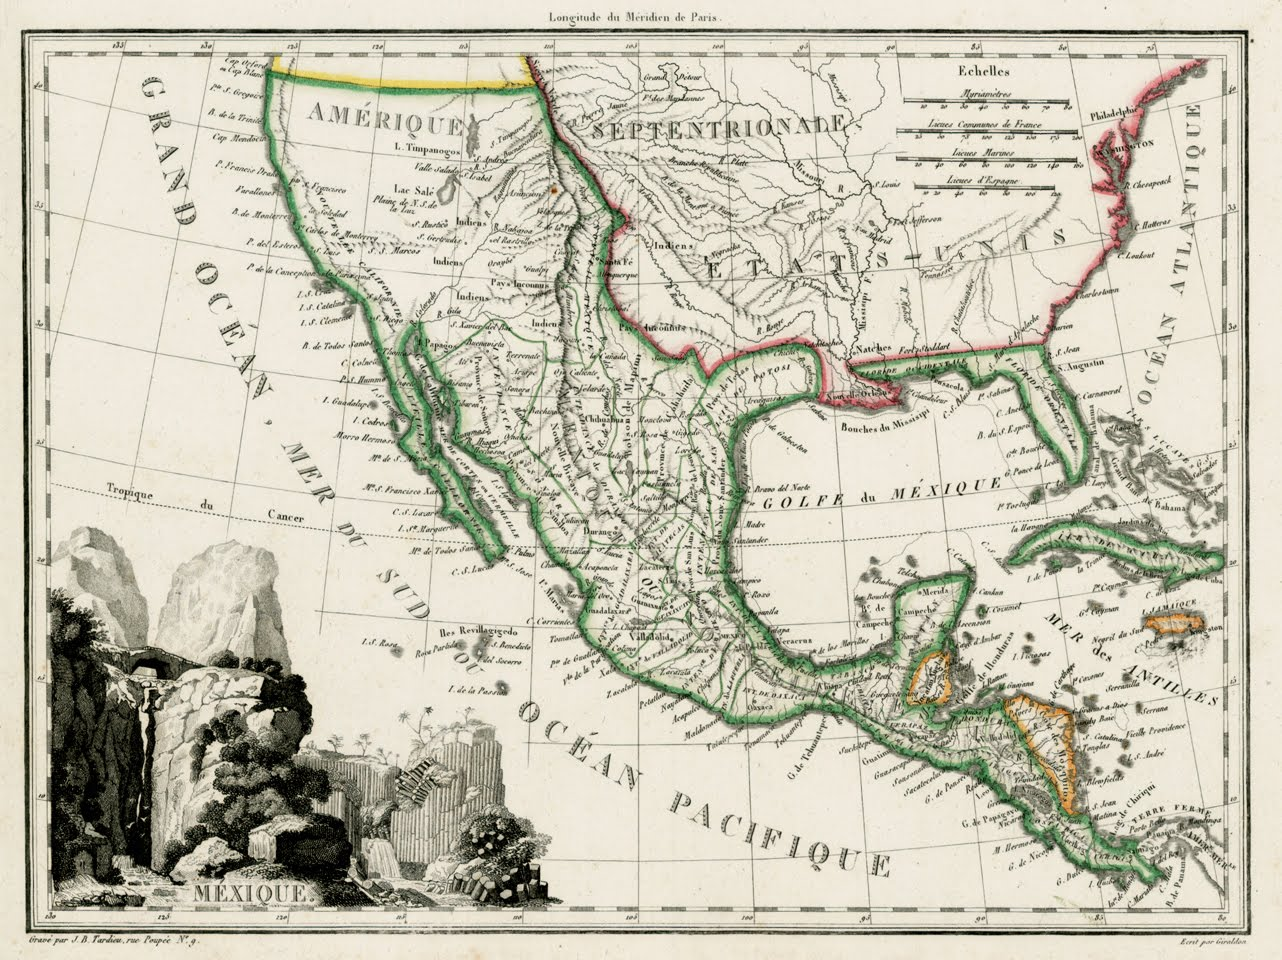 1840s In Mexico